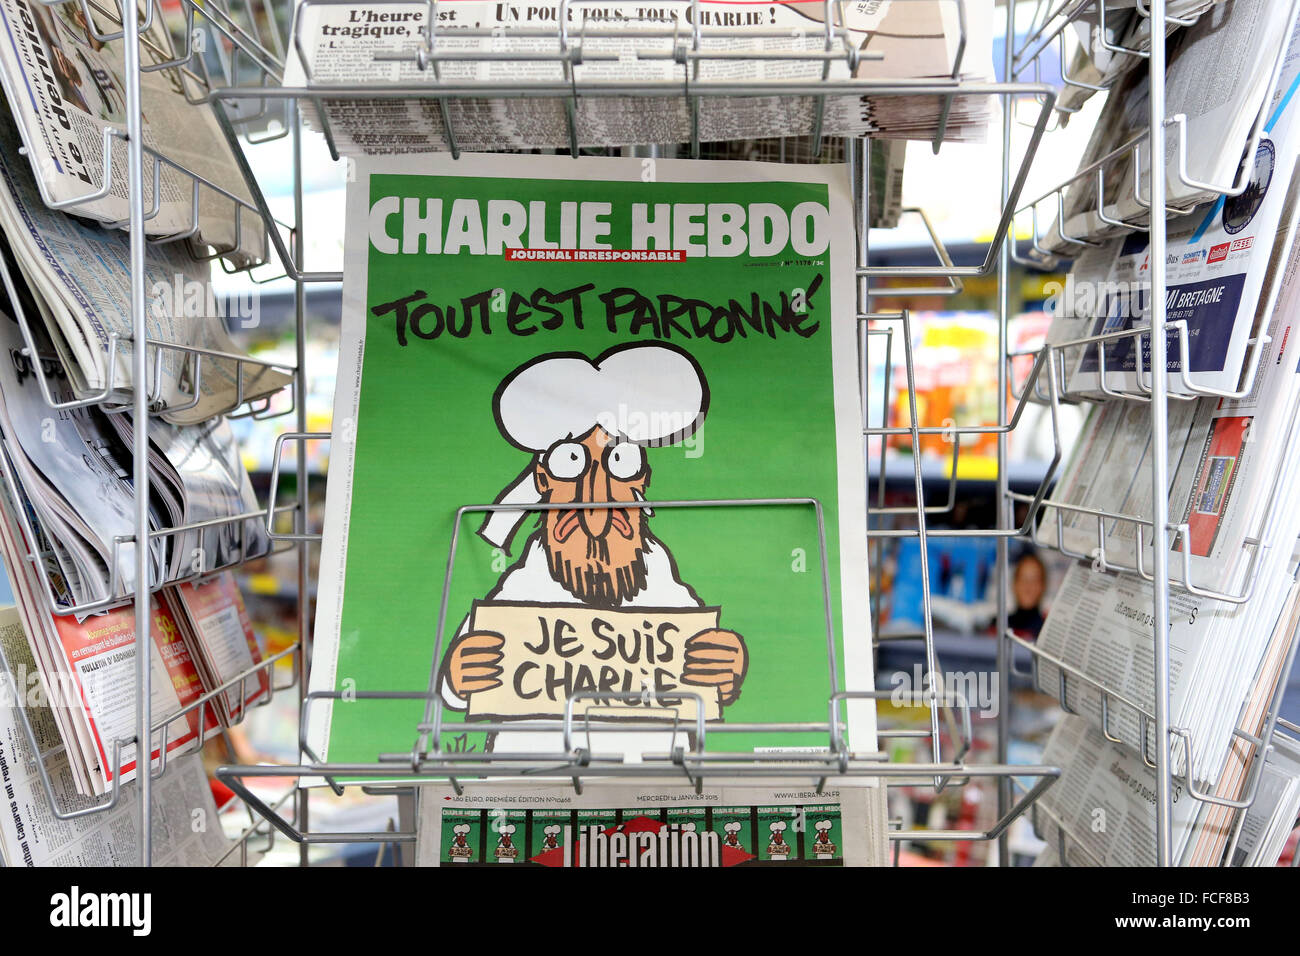 Rennes (Brittany, north-western France): Release of the French satirical magazine Charlie Hebdo N°1178 (2015/01/14) Stock Photo